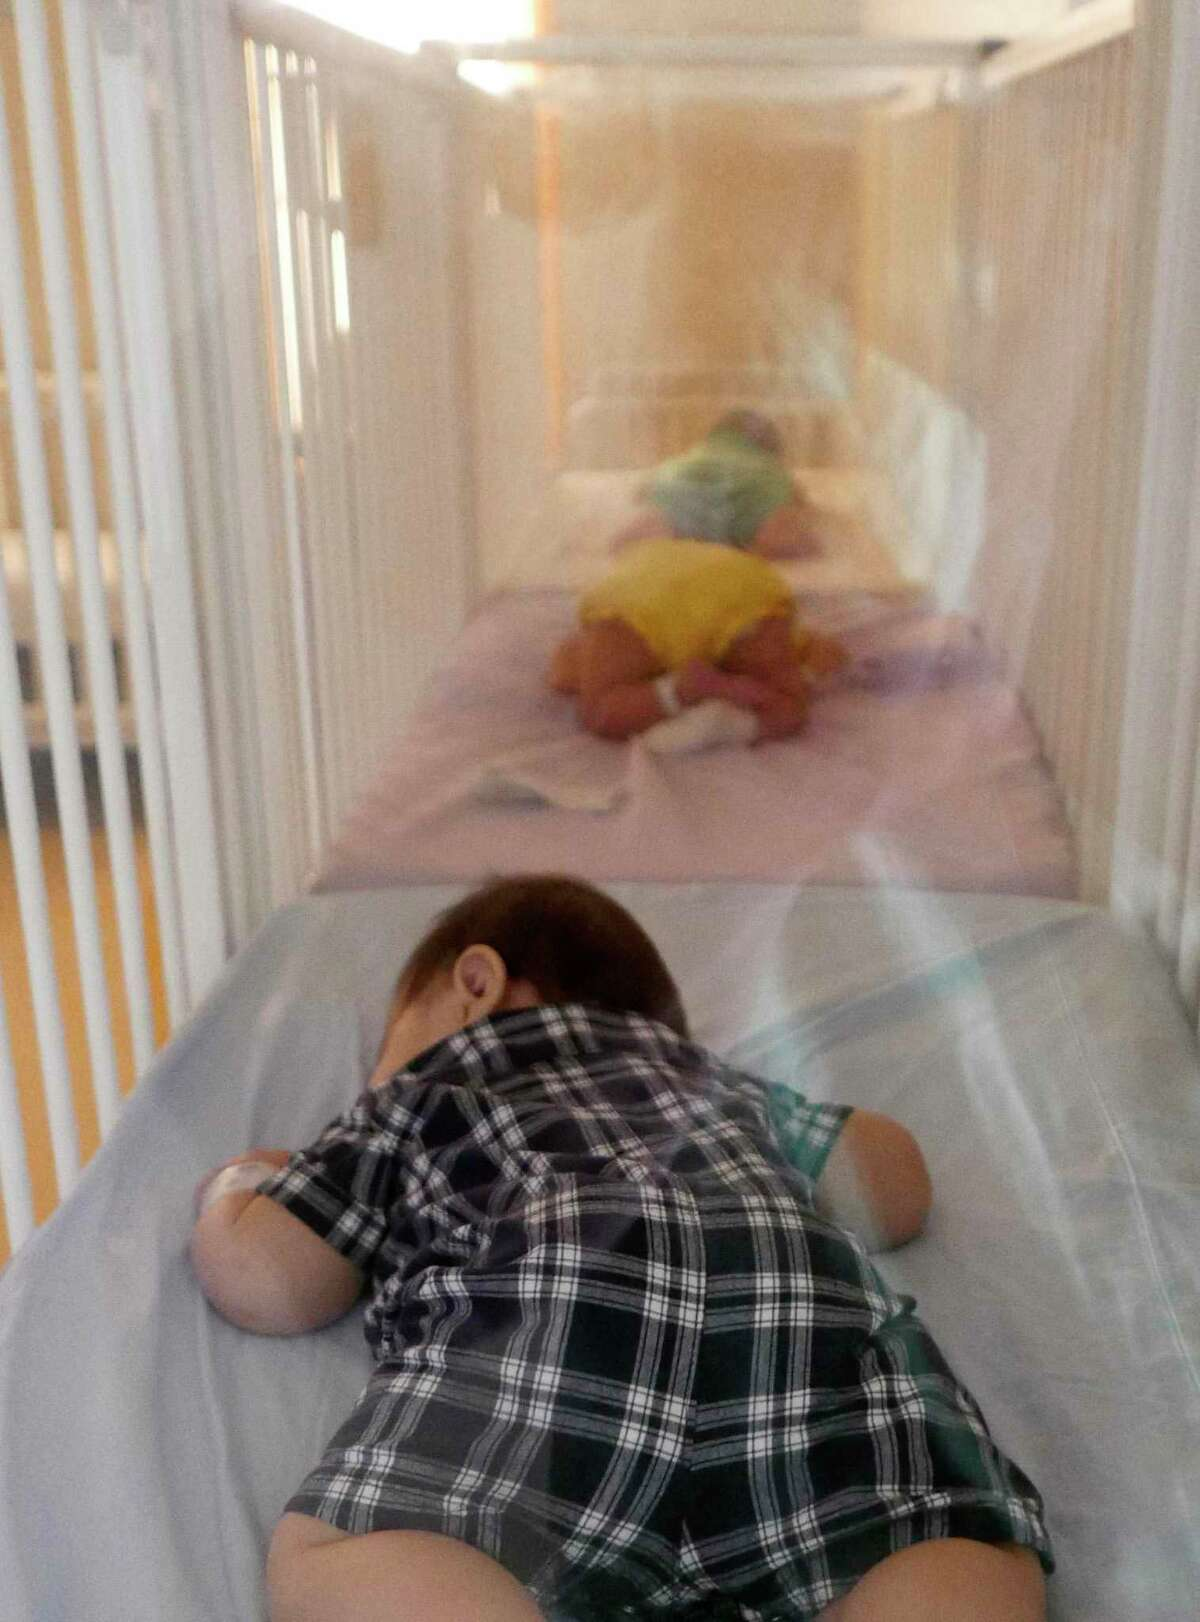 Babies sleep at nap time at the Children's Shelter of San Antonio on Tuesday, Aug. 21, 2018. The Texas Department of Family and Protective Services has awarded a major foster care contract to Family Tapestry, a division of the Children's Shelter of San Antonio.